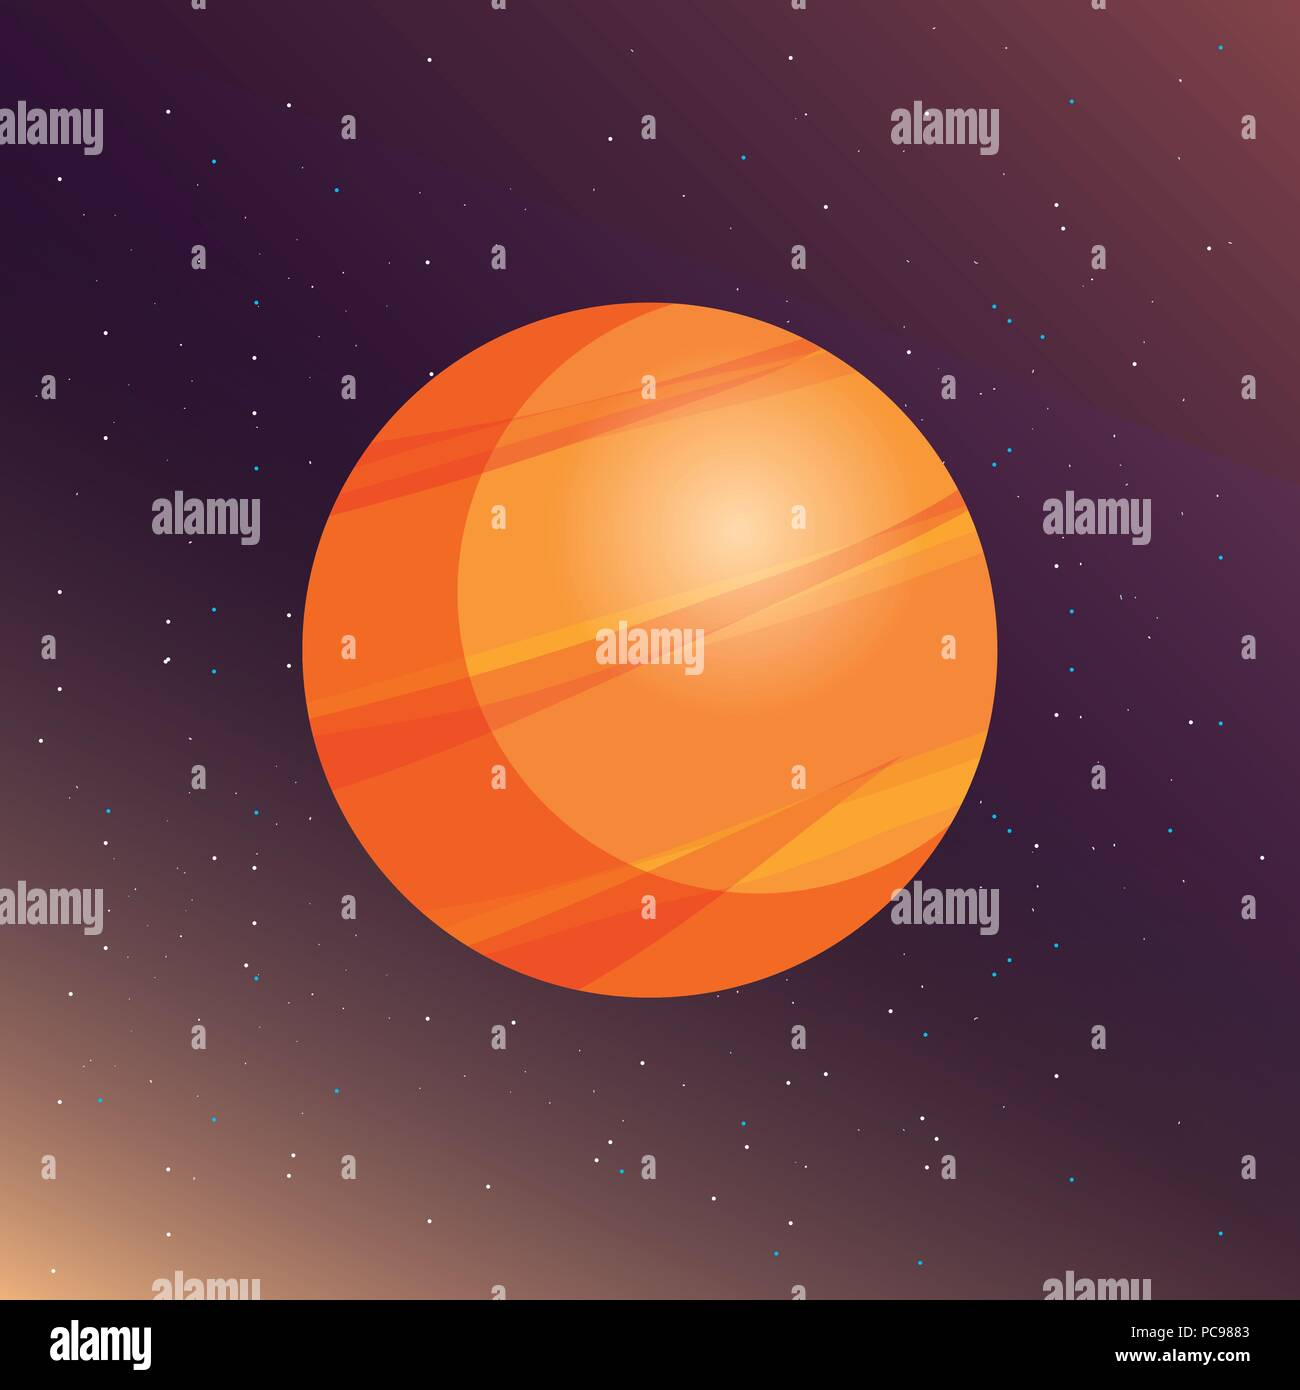 venus planet over space background, colorful design. vector illustration - Stock Vector